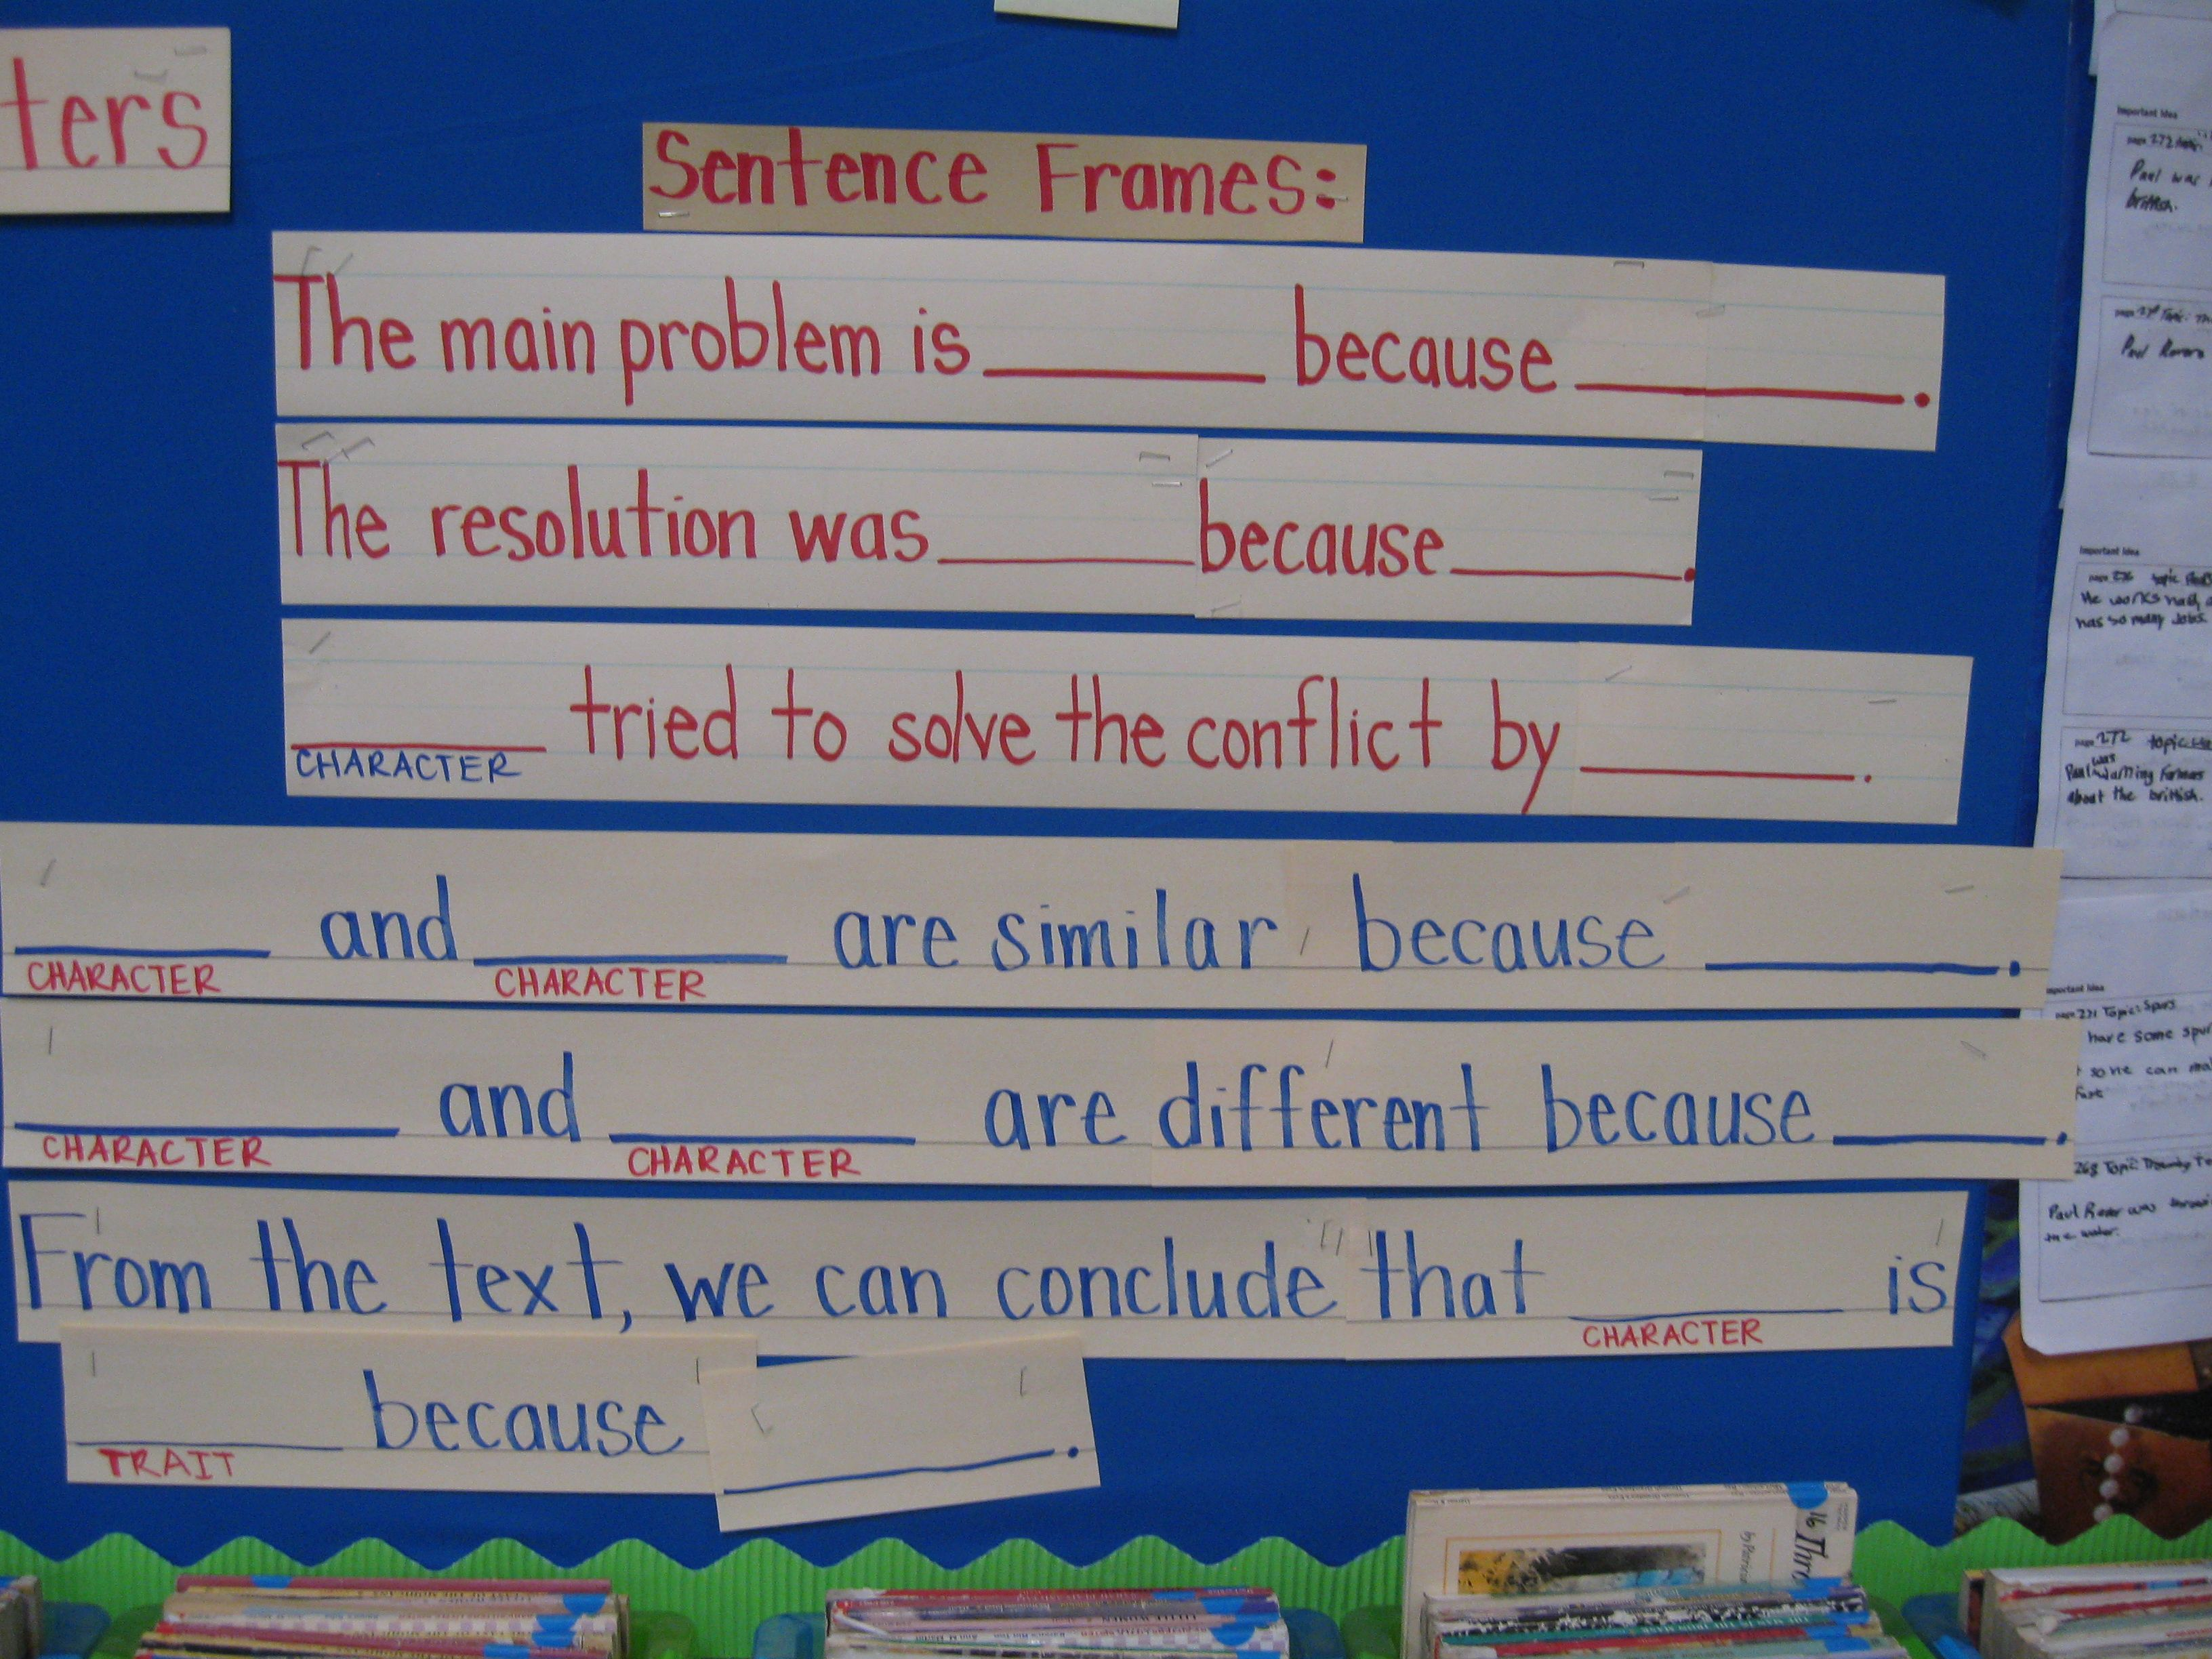 Problem Solution And Character Comparison Sentence Frame